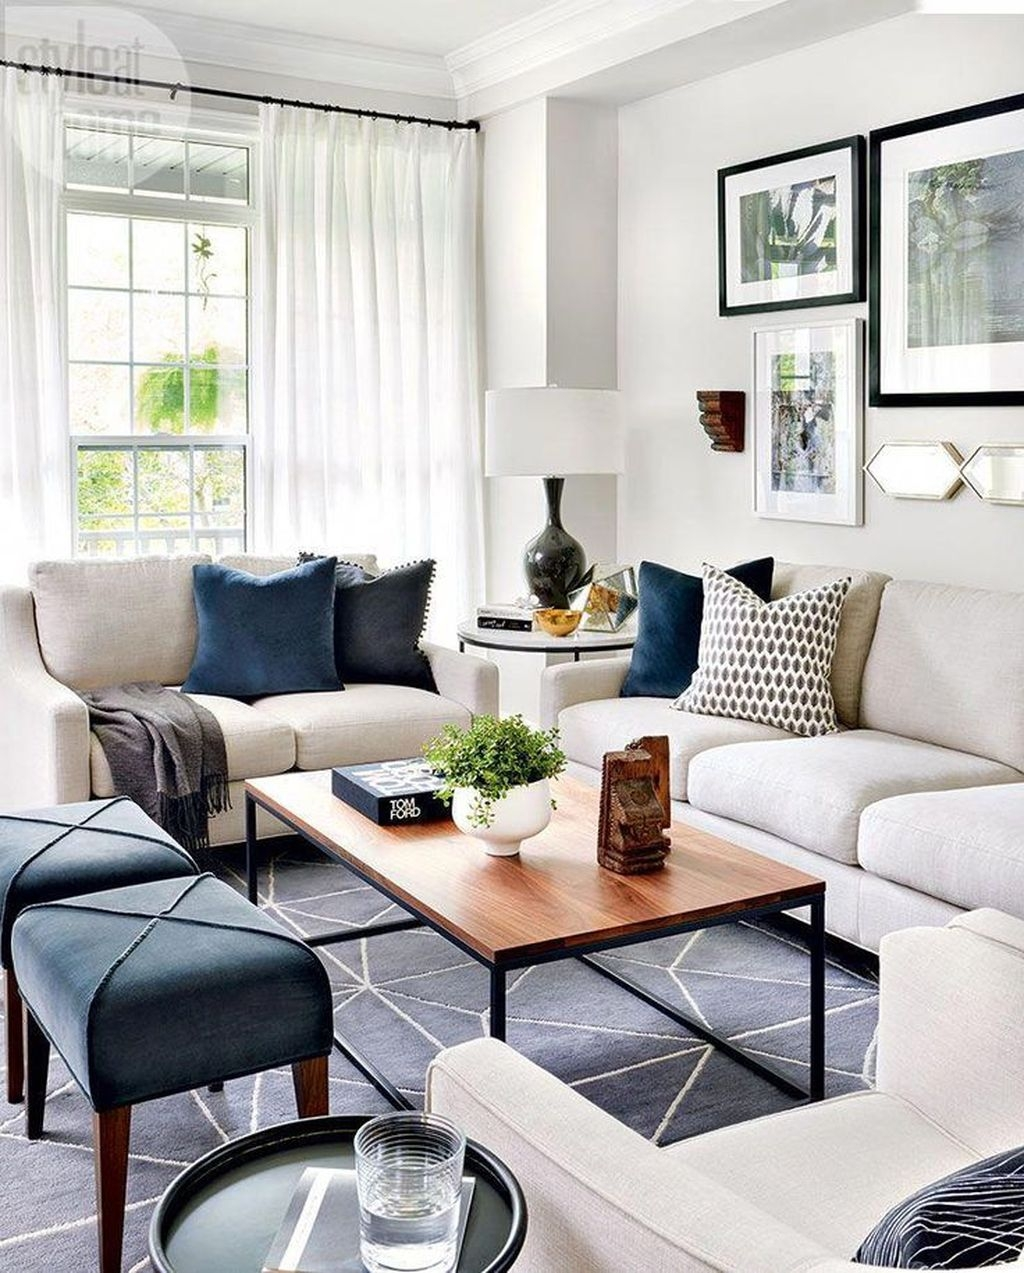 Wonderful Neutral Living Room Design Ideas To Try14